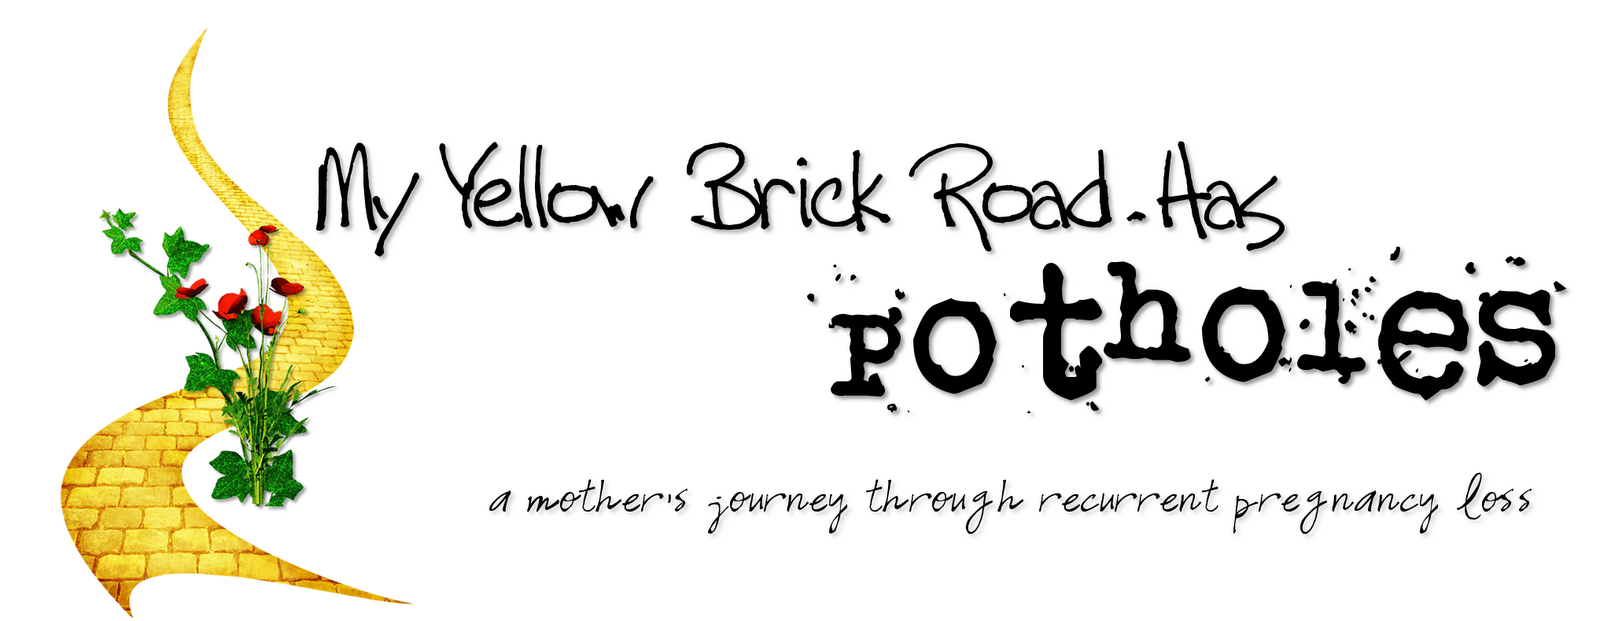 My Yellow Brick Road Has Potholes